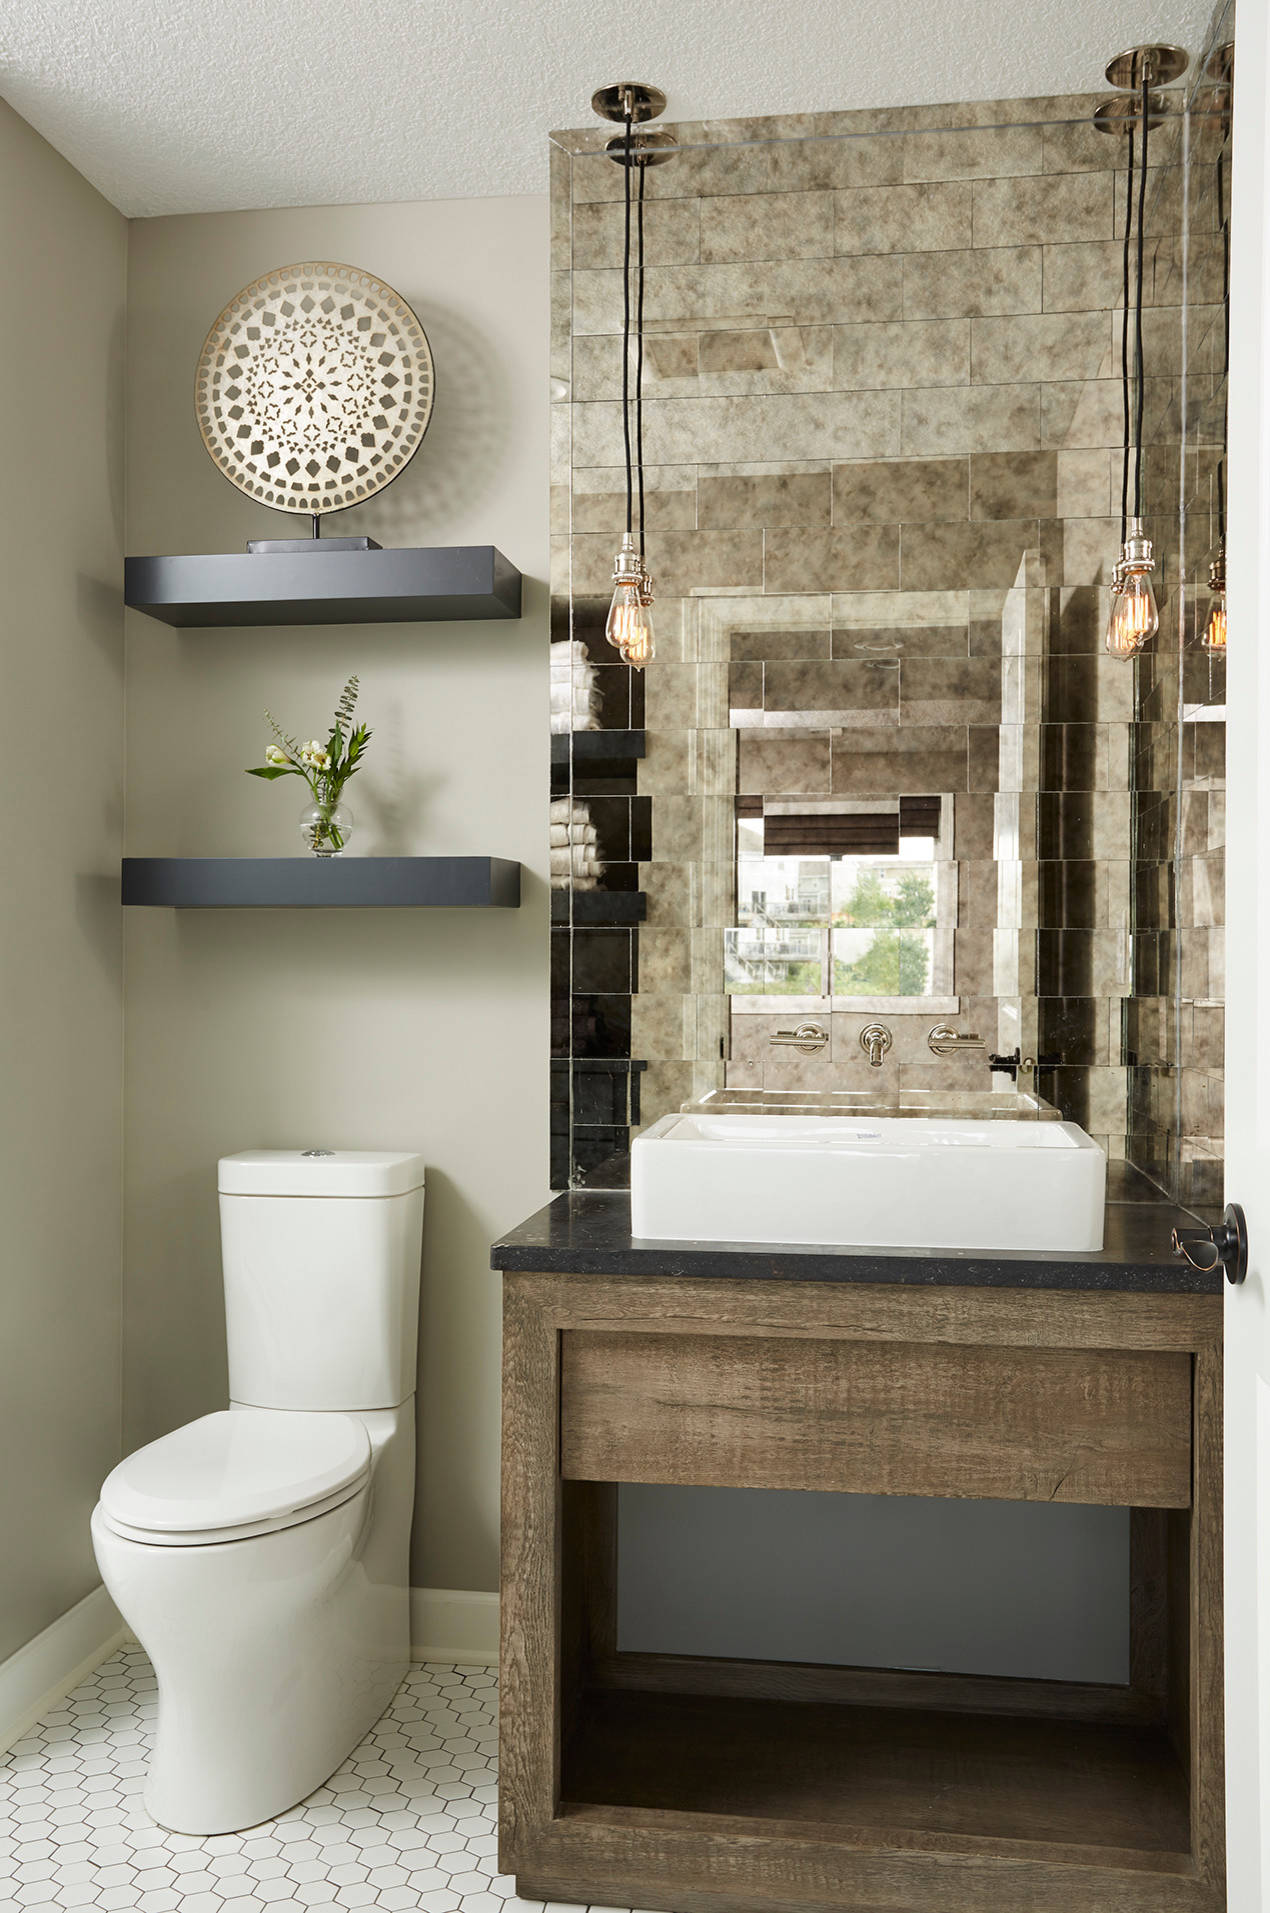 75 Beautiful Mirror Tile Powder Room Pictures Ideas February 2021 Houzz